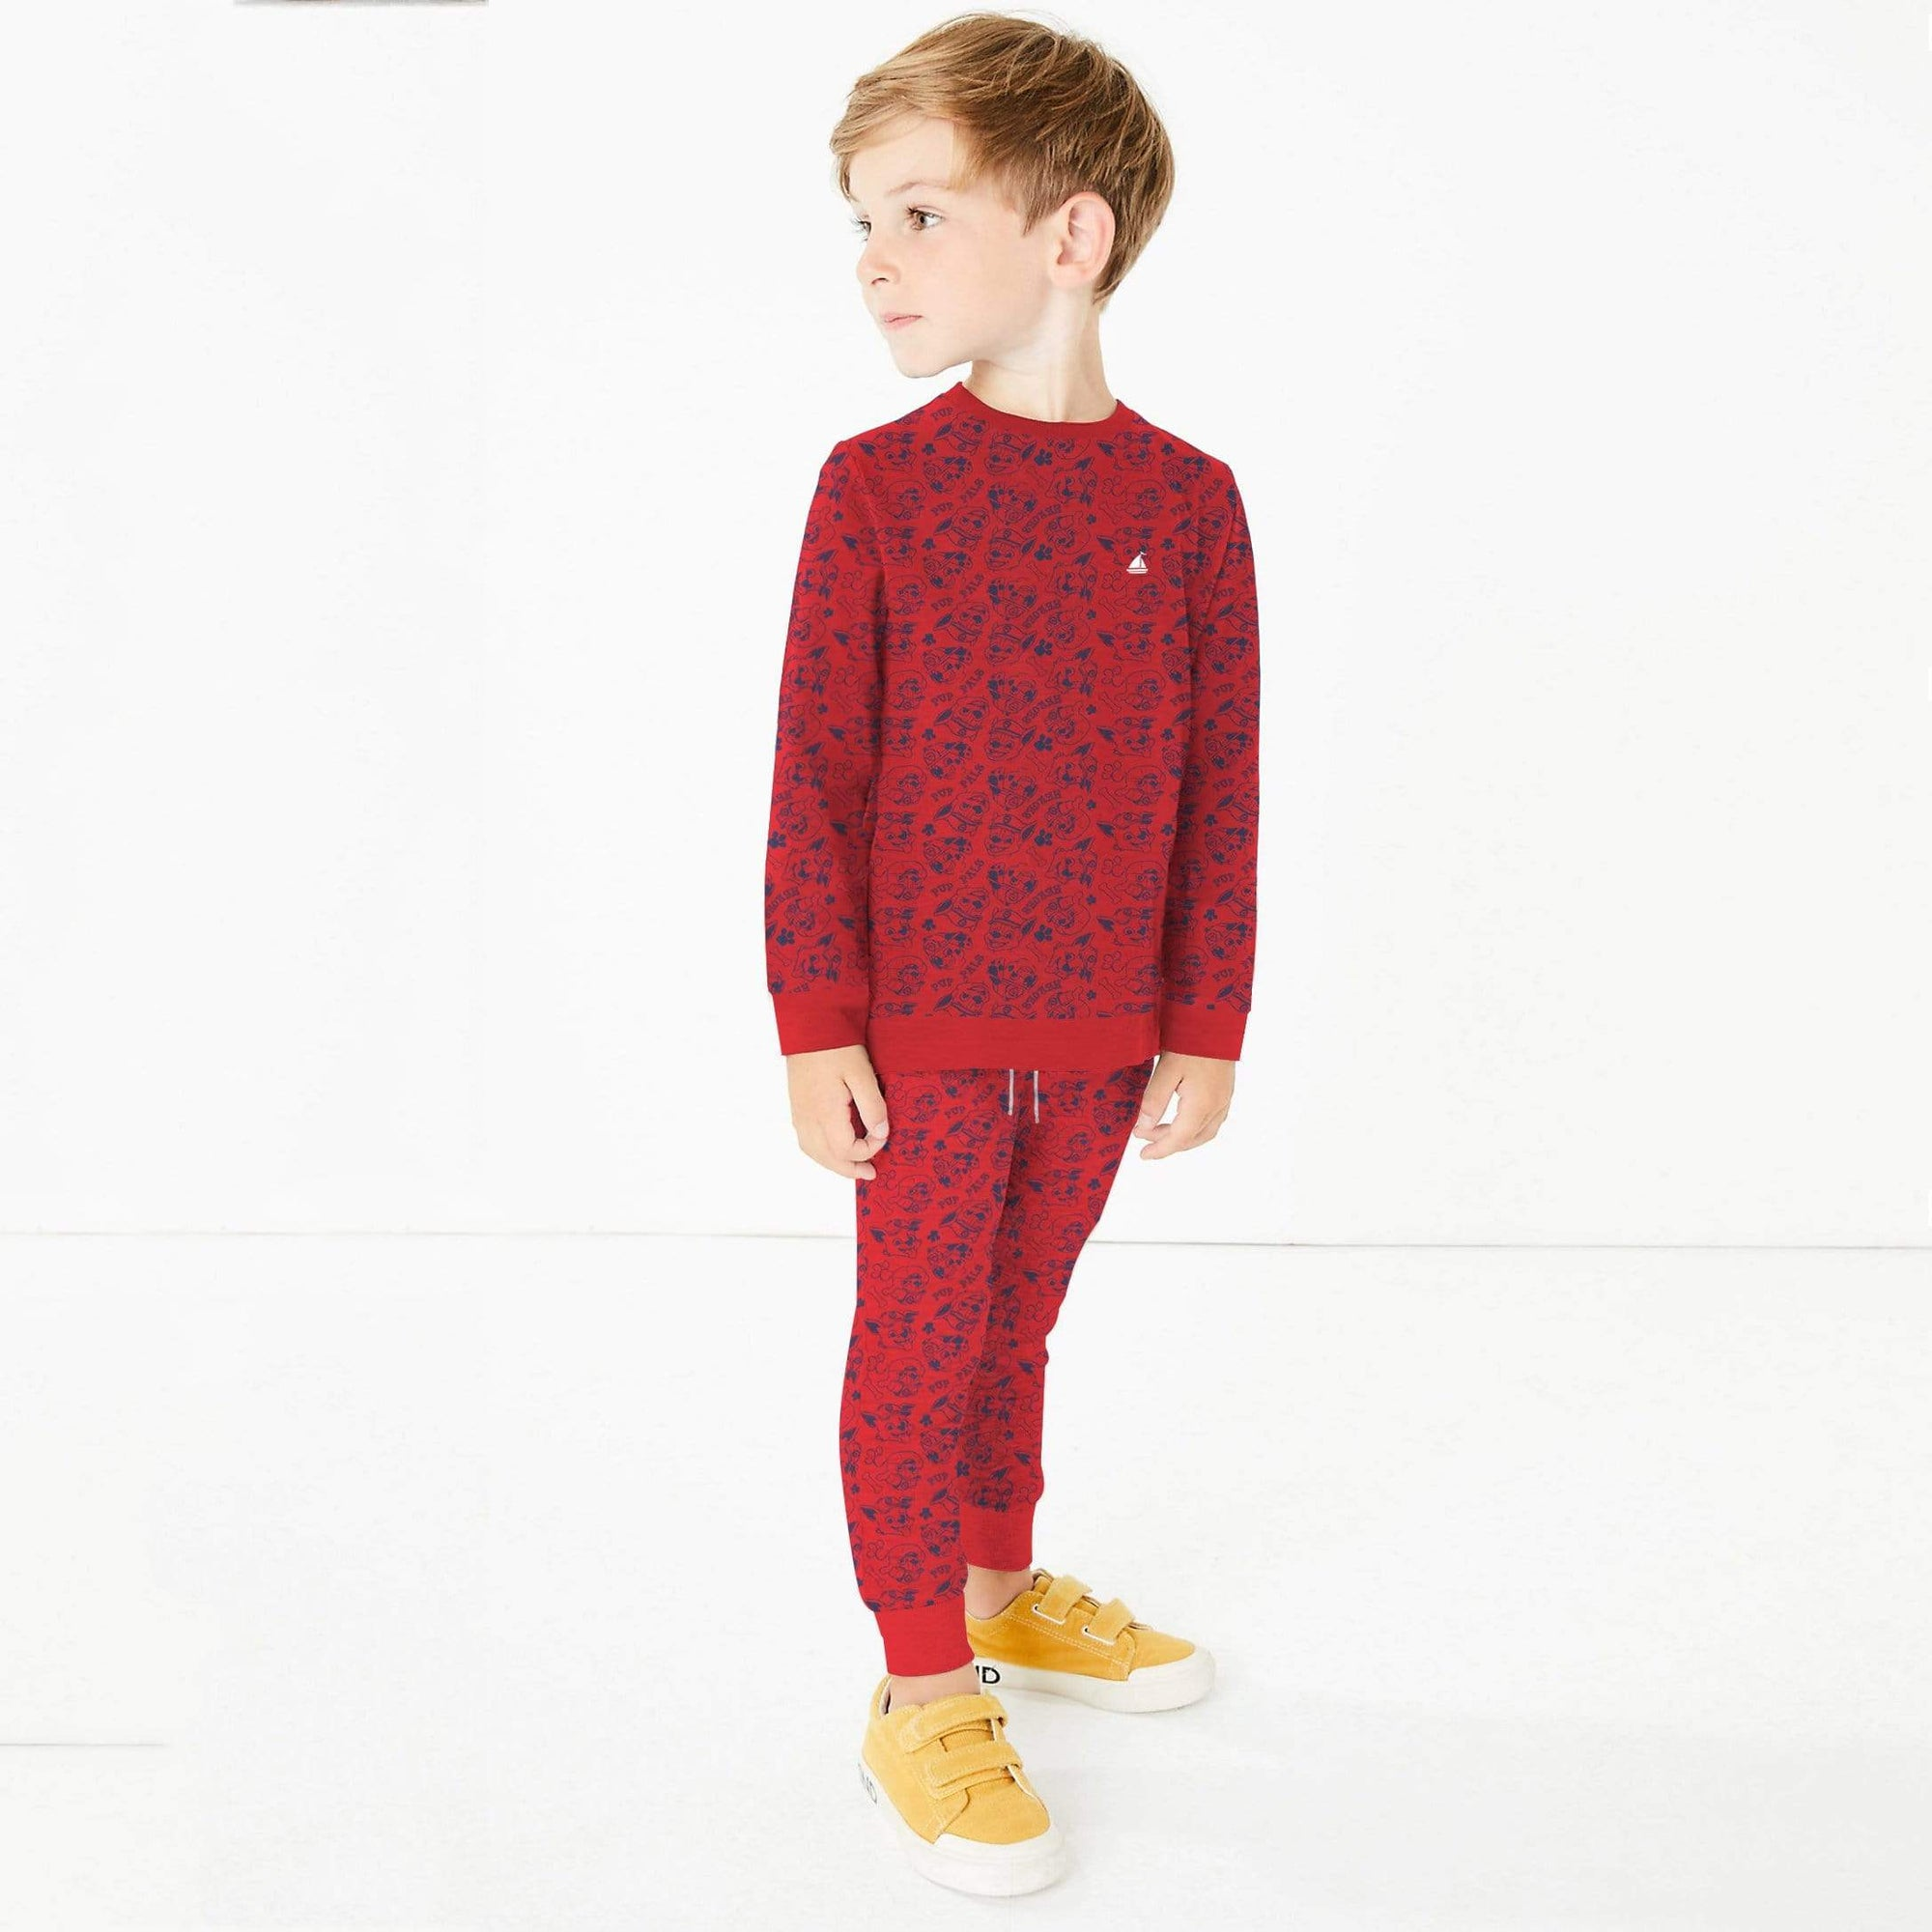 Stone Harbor Boys Track Suit Red / 2-3 Years Boy's Stone Harbor FOXING Allover Printed Track Suit